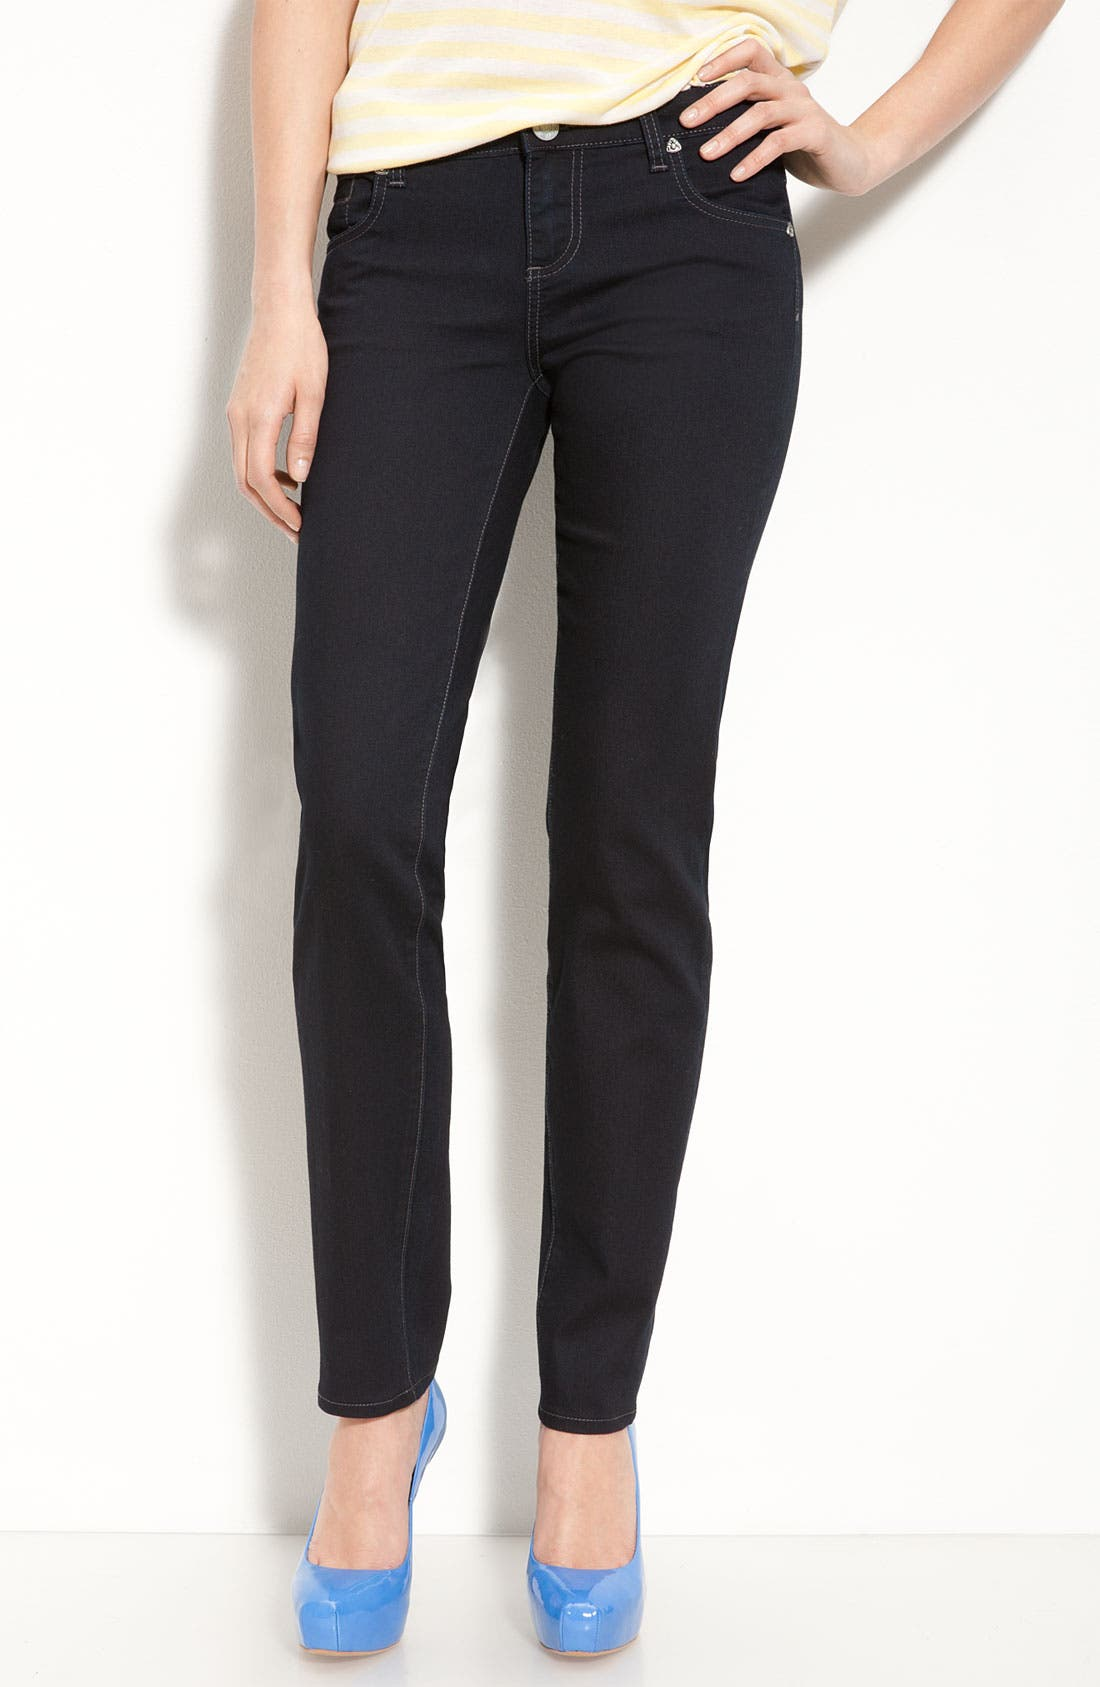 Main Image - KUT from the Kloth 'Diana' Skinny Jeans (Delight Wash) (Online Only)